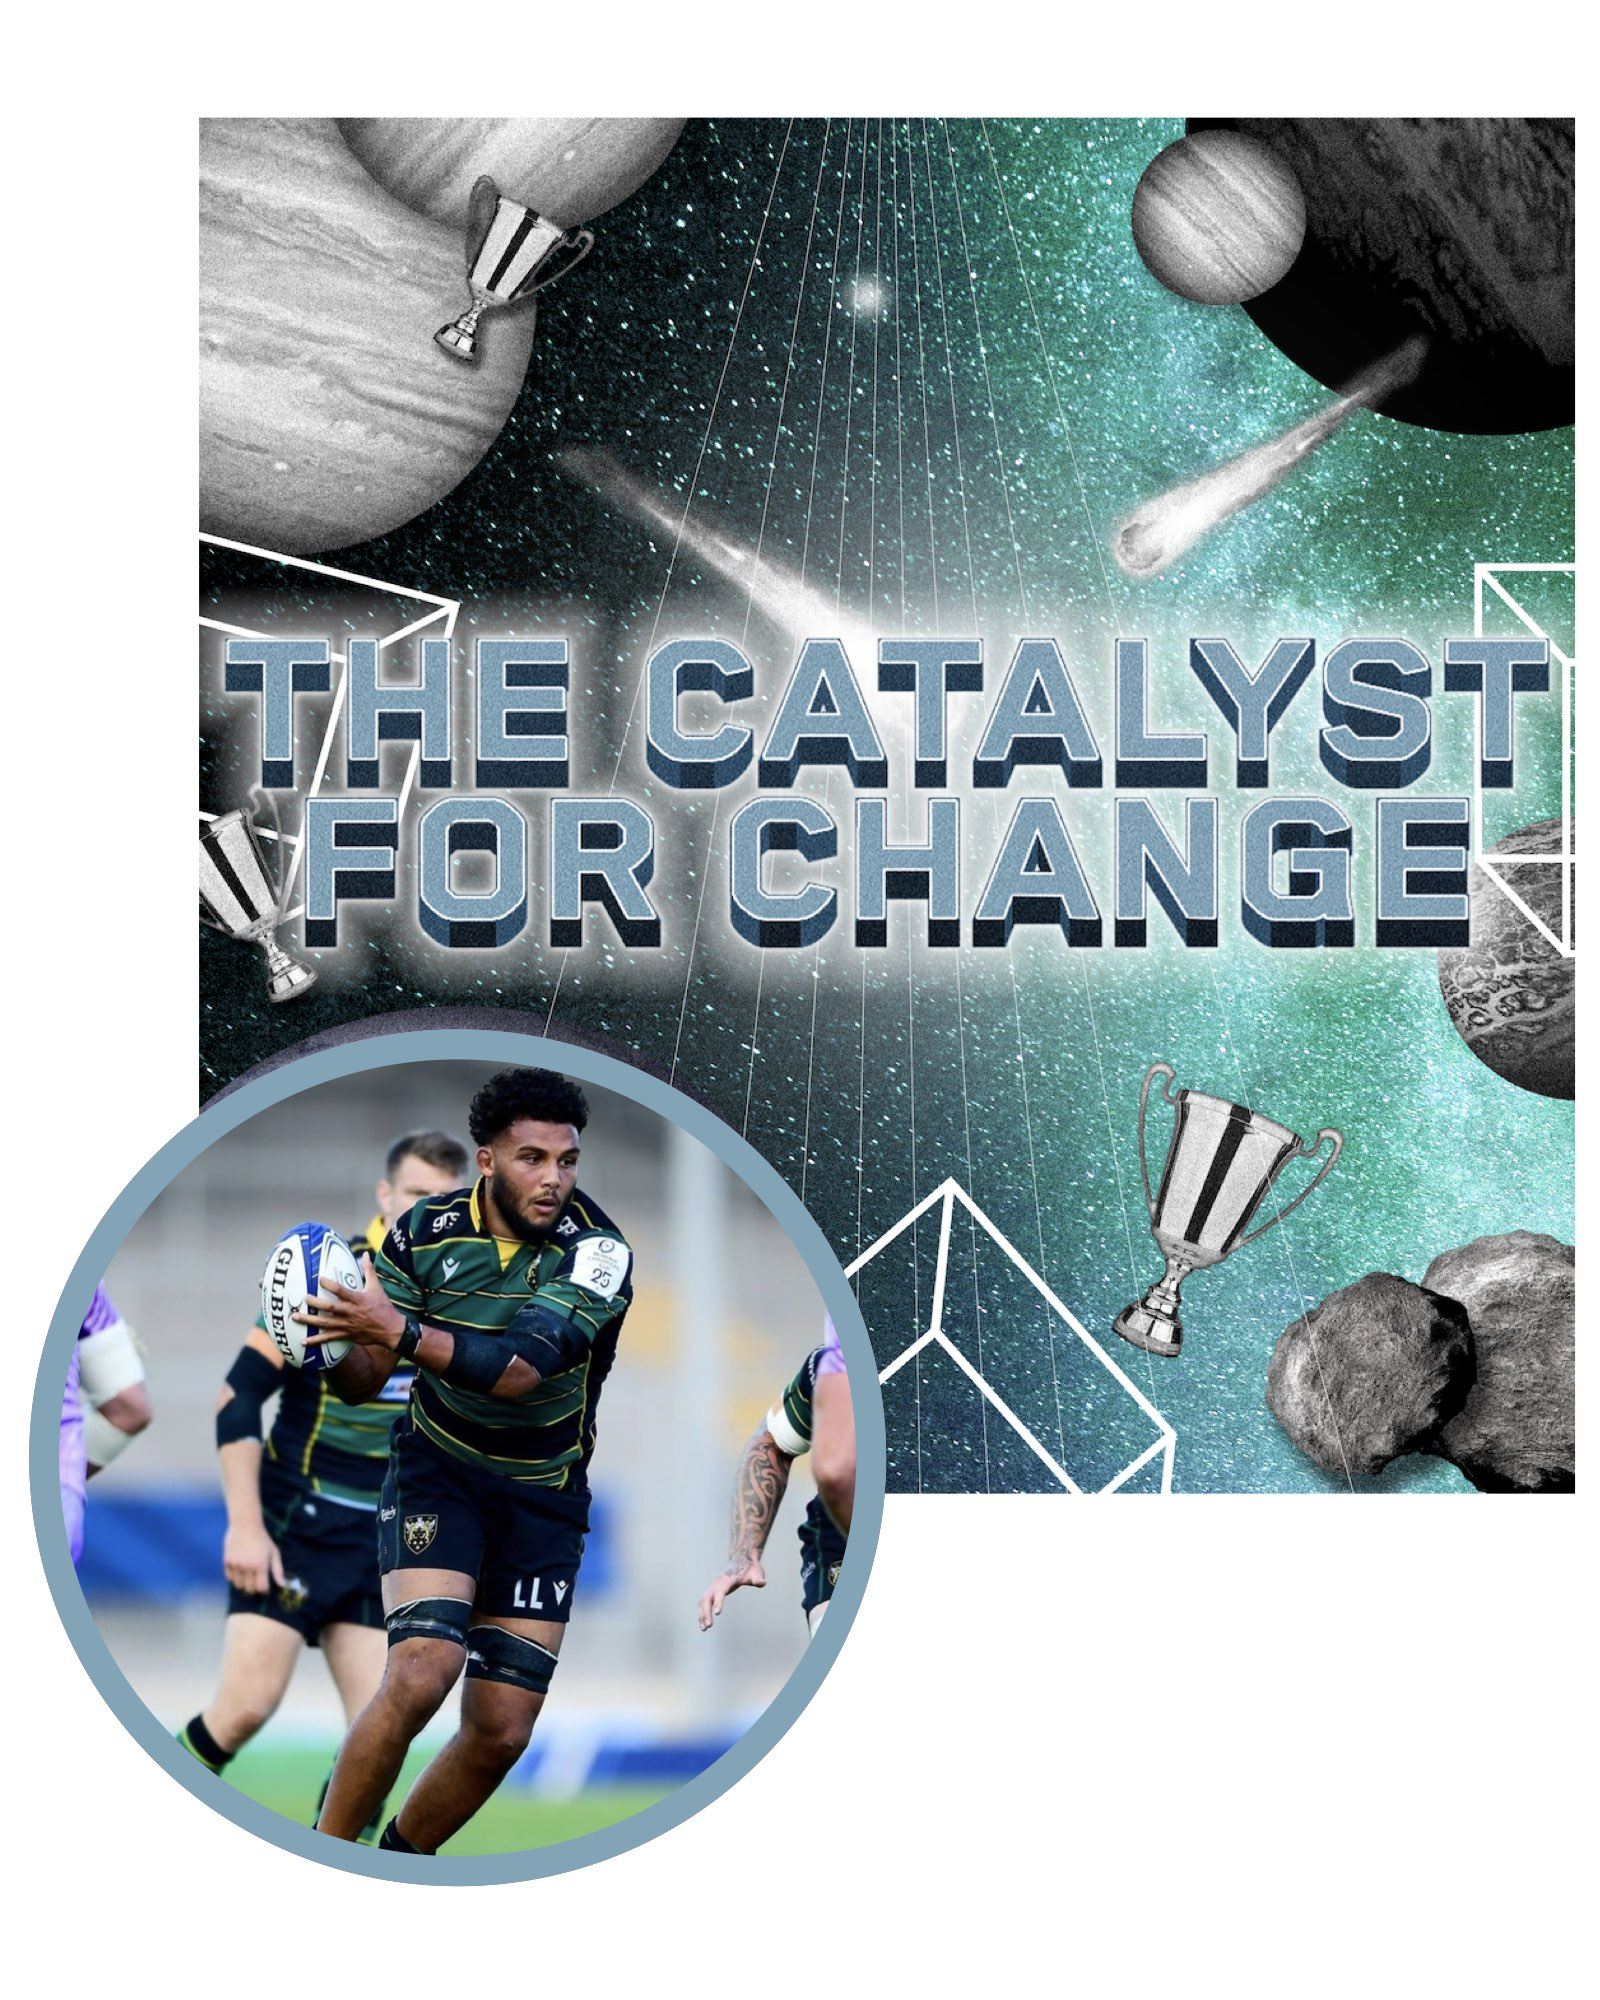 Presented by the Northampton Saints